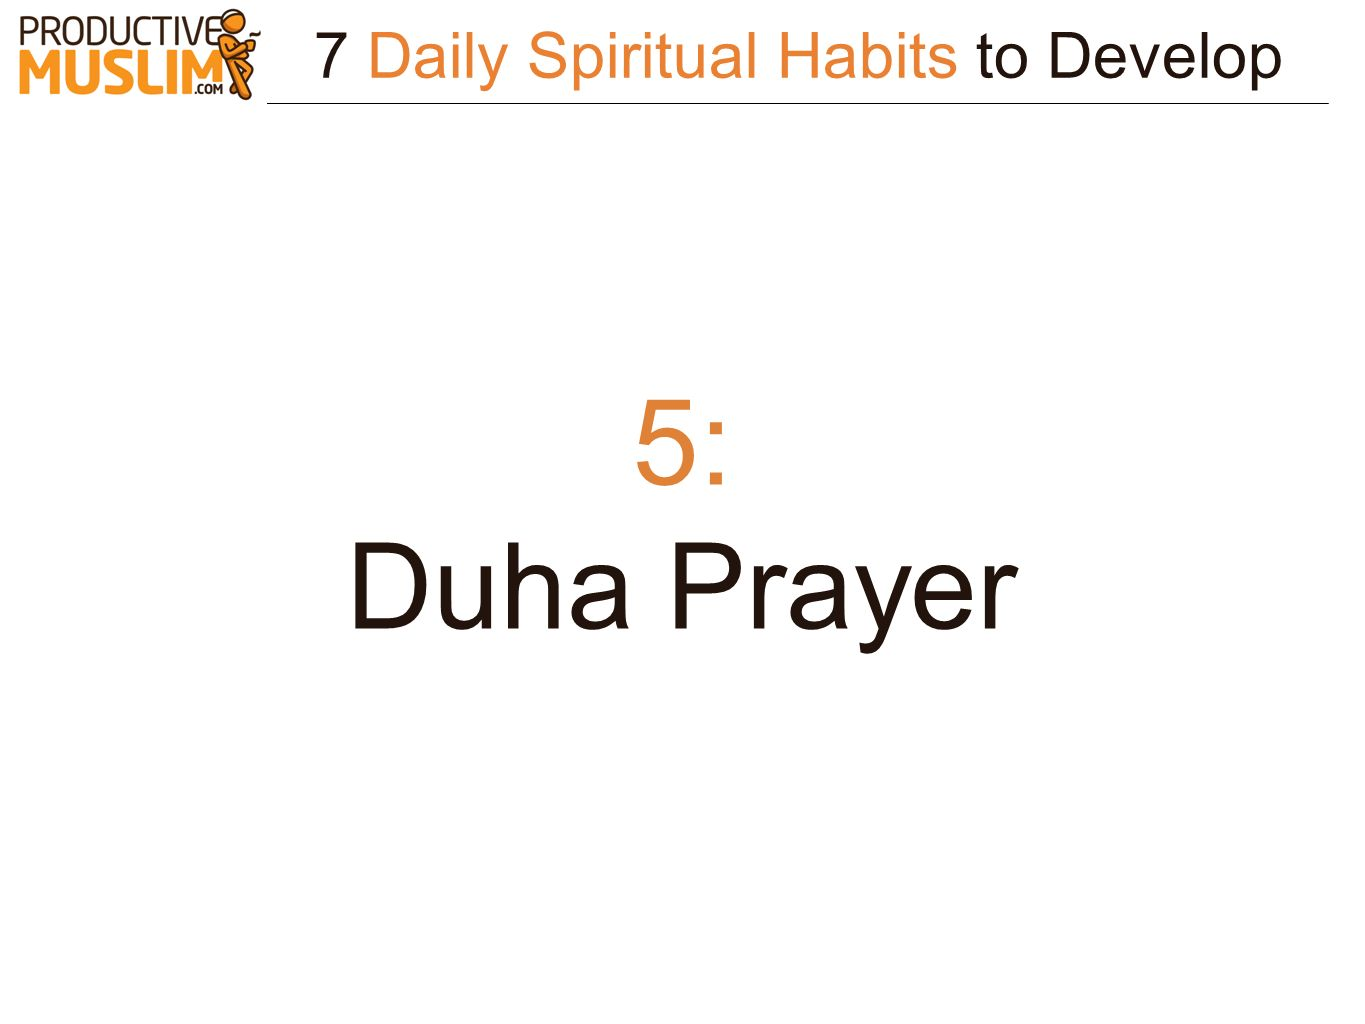 7 Daily Spiritual Habits to Develop